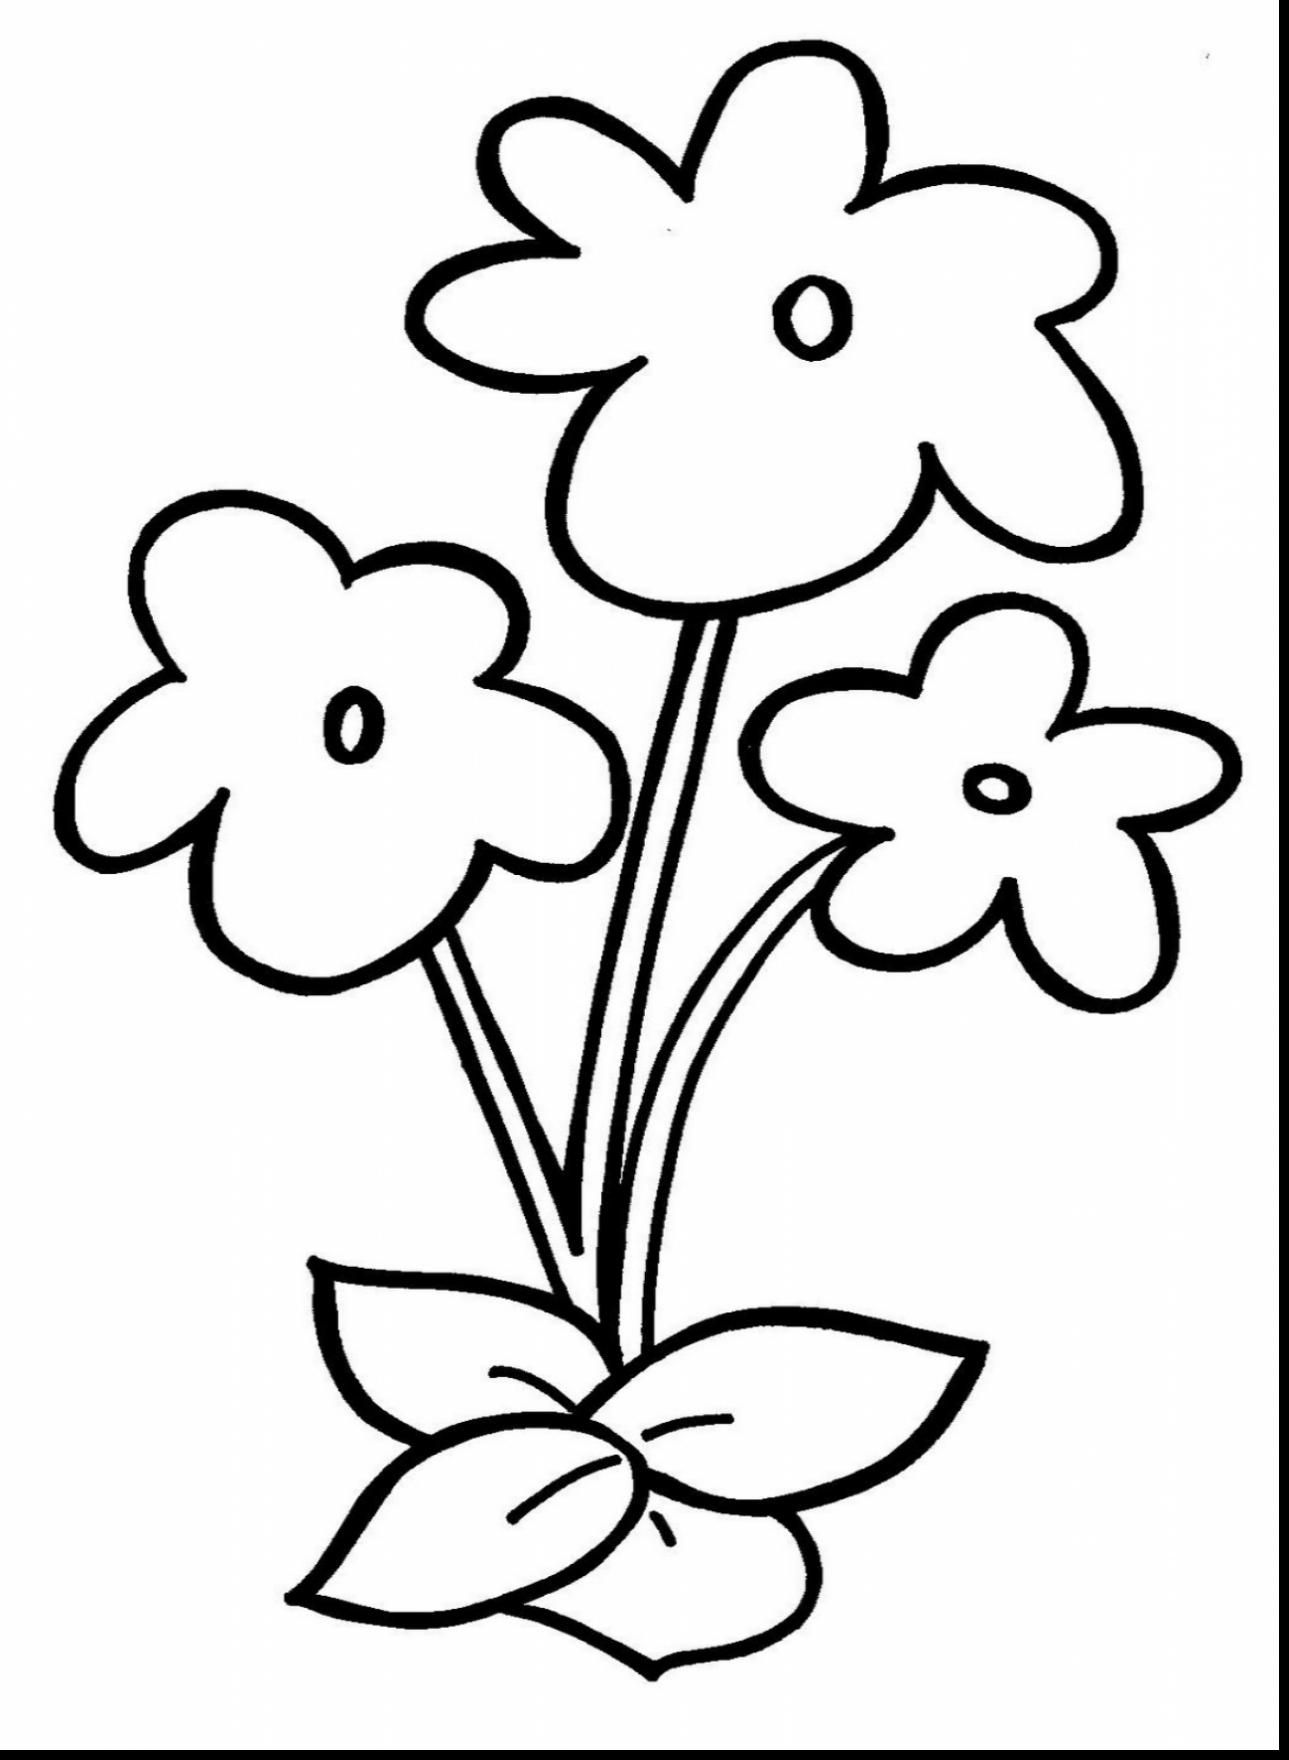 free coloring pages of flowers free printable flower coloring pages for kids best flowers pages free coloring of